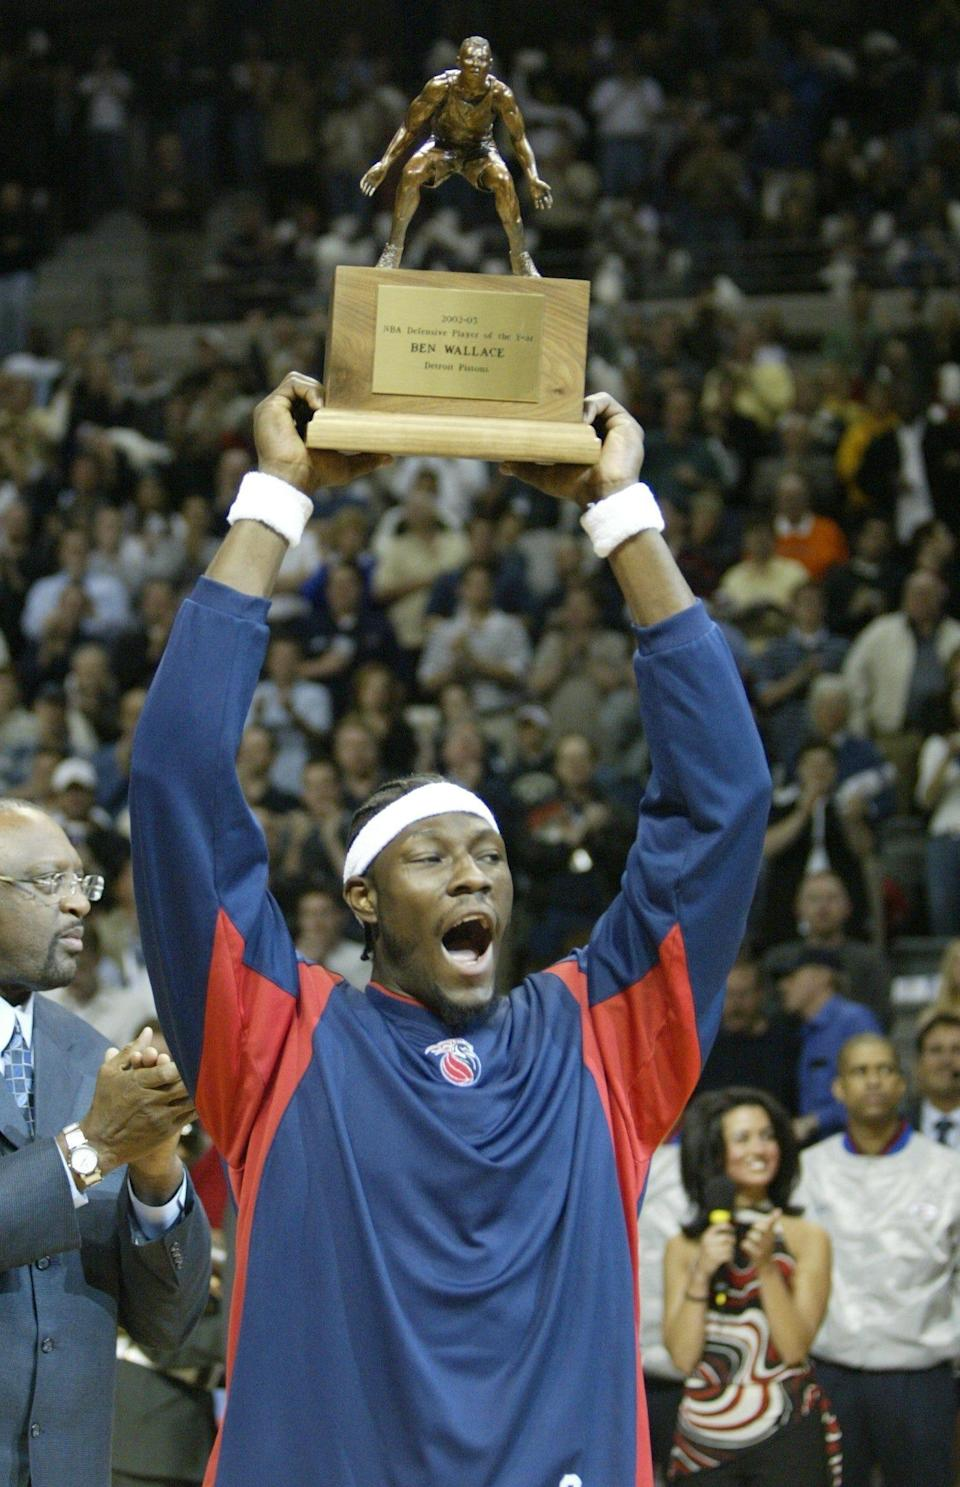 Ben Wallace holds up his NBA Defensive Player of the Year trophy prior to Game 2 of the playoff series vs. Orlando at the Palace, April 23, 2003.